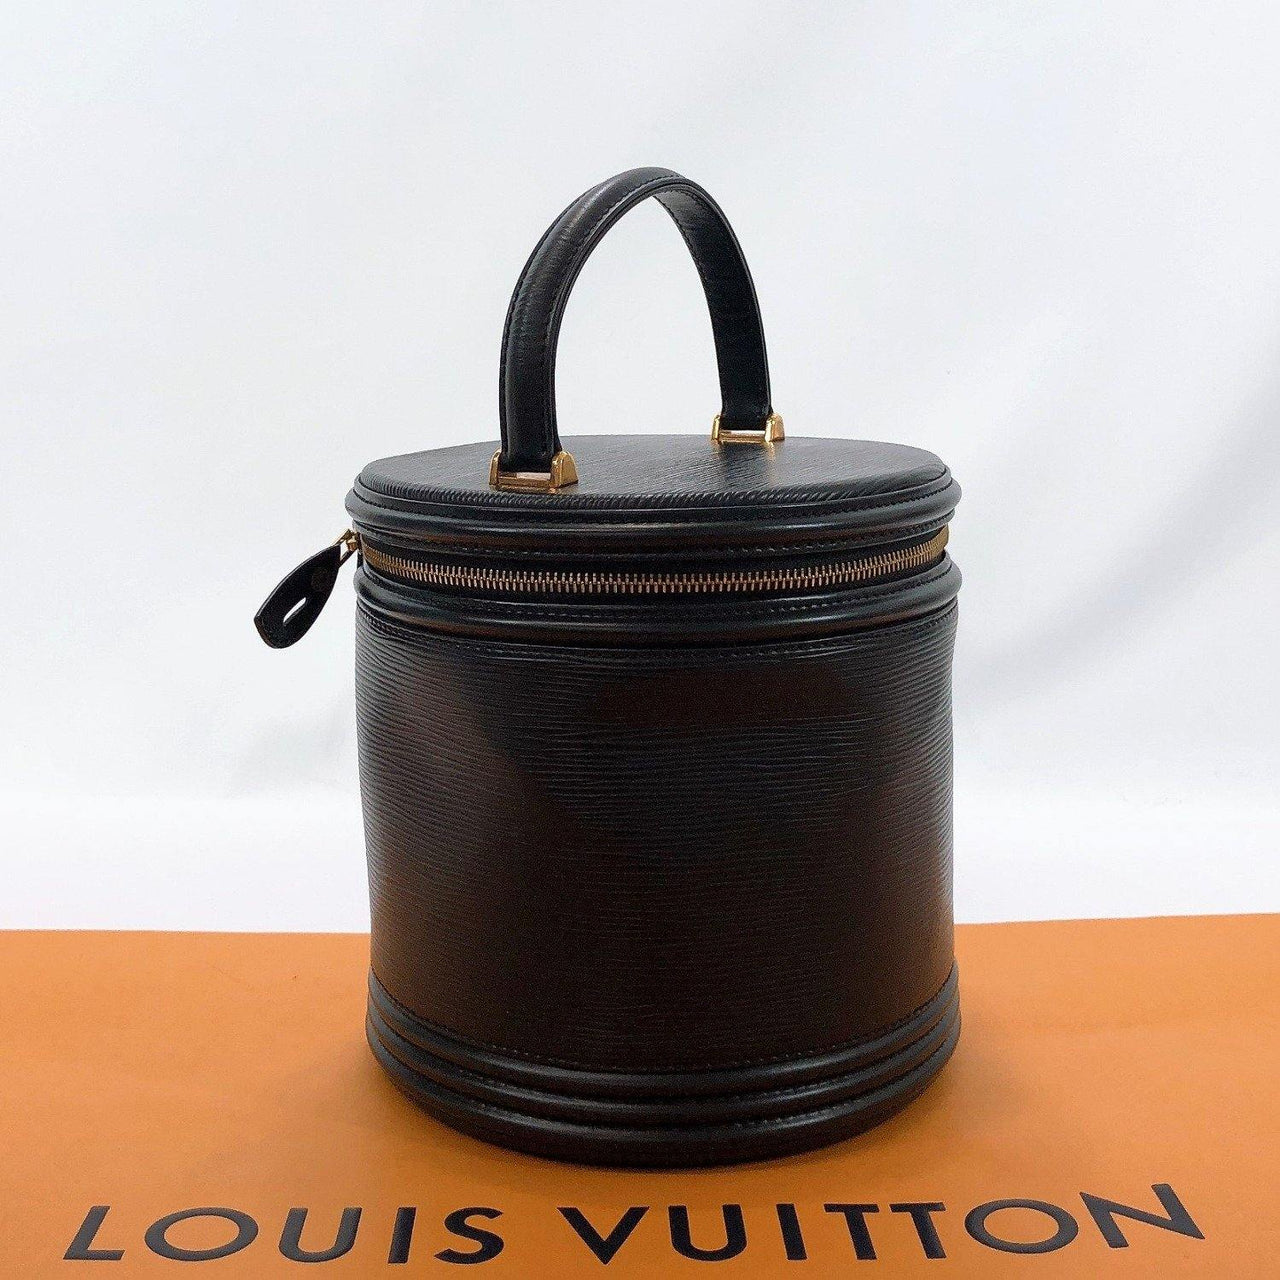 LOUIS VUITTON Handbag M48032 Cannes Vanity bag Epi Leather Black (Noir) Women Used - JP-BRANDS.com